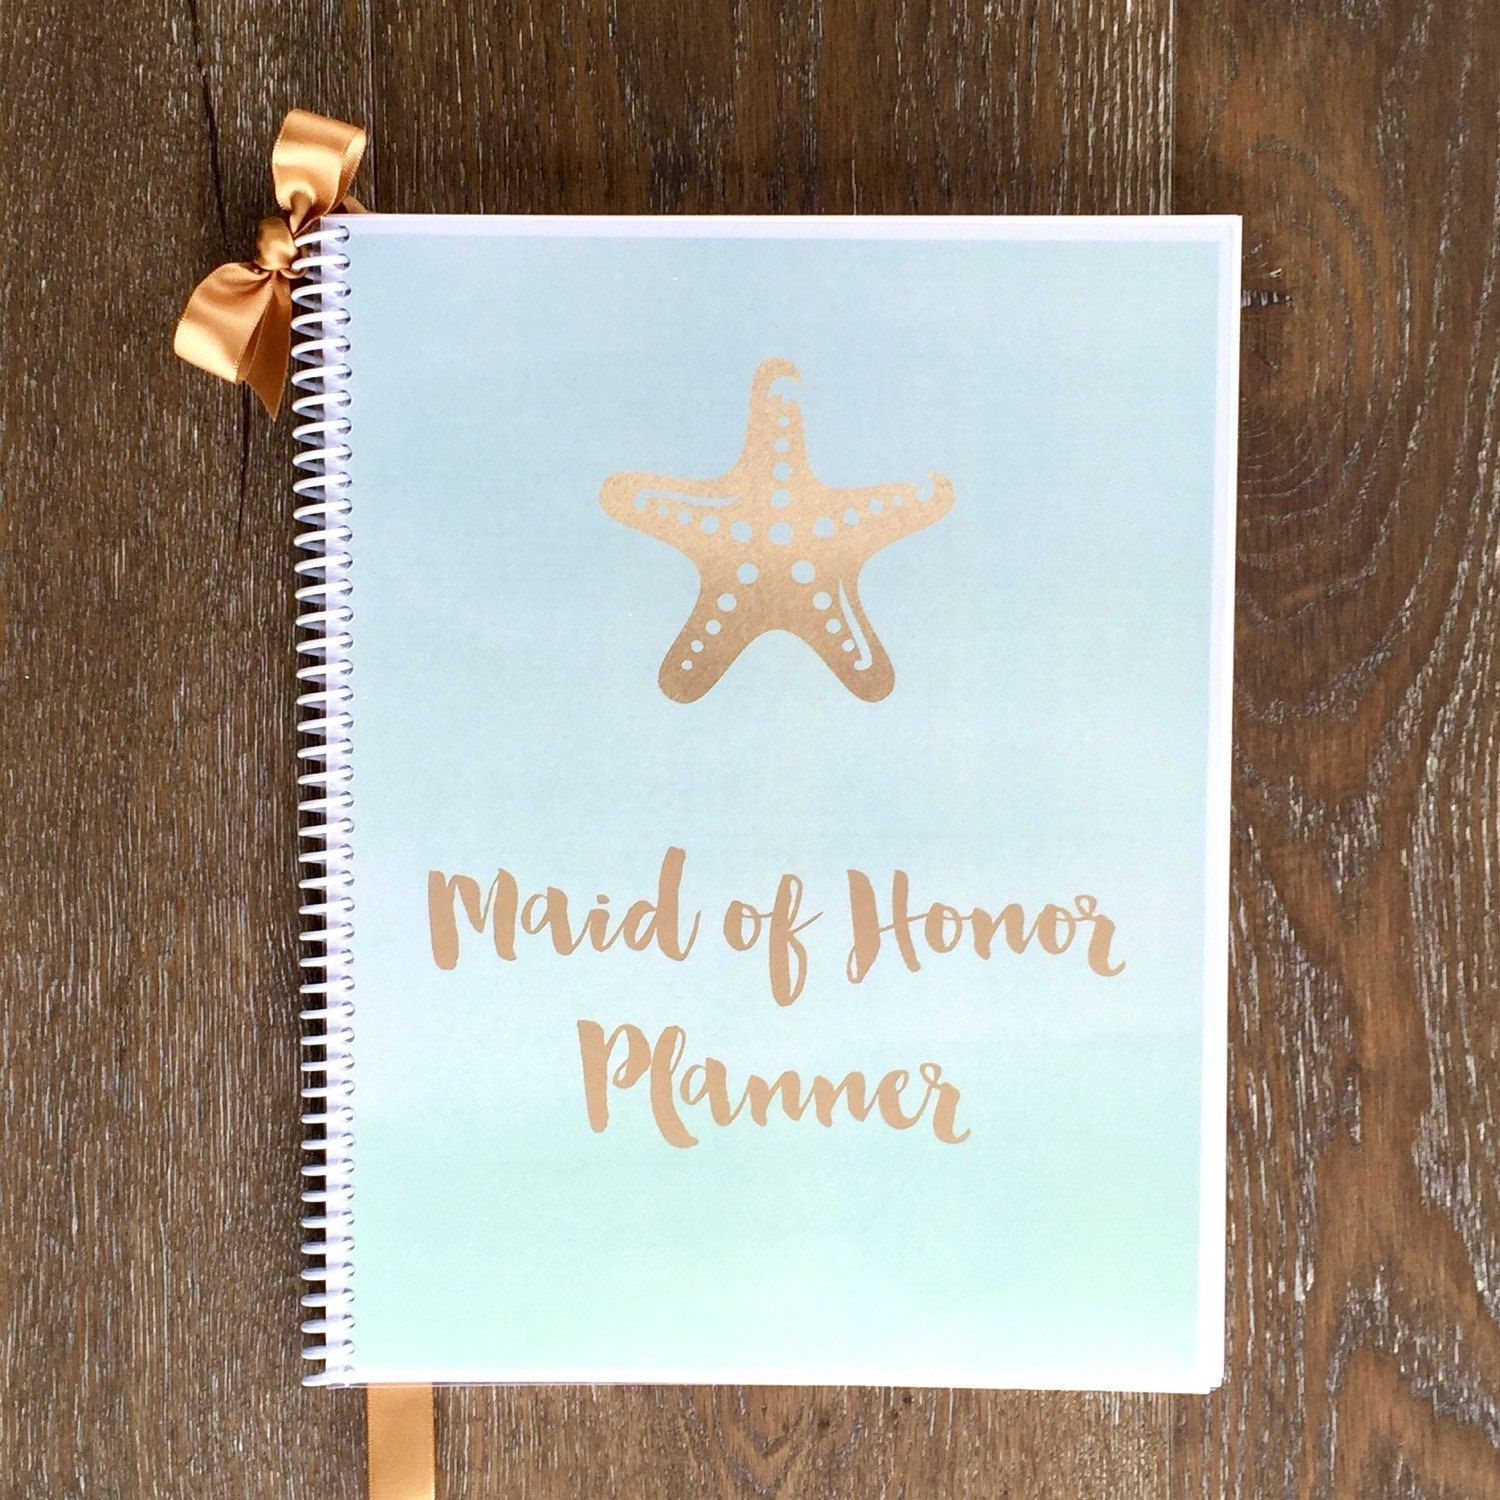 bridal shower keepsake book%0A Maid of Honor Wedding Planner Book  u     Wedding Organizer  Starfish Design   Wedding Planner Keepsake  Bridal Shower  Maid of Honor